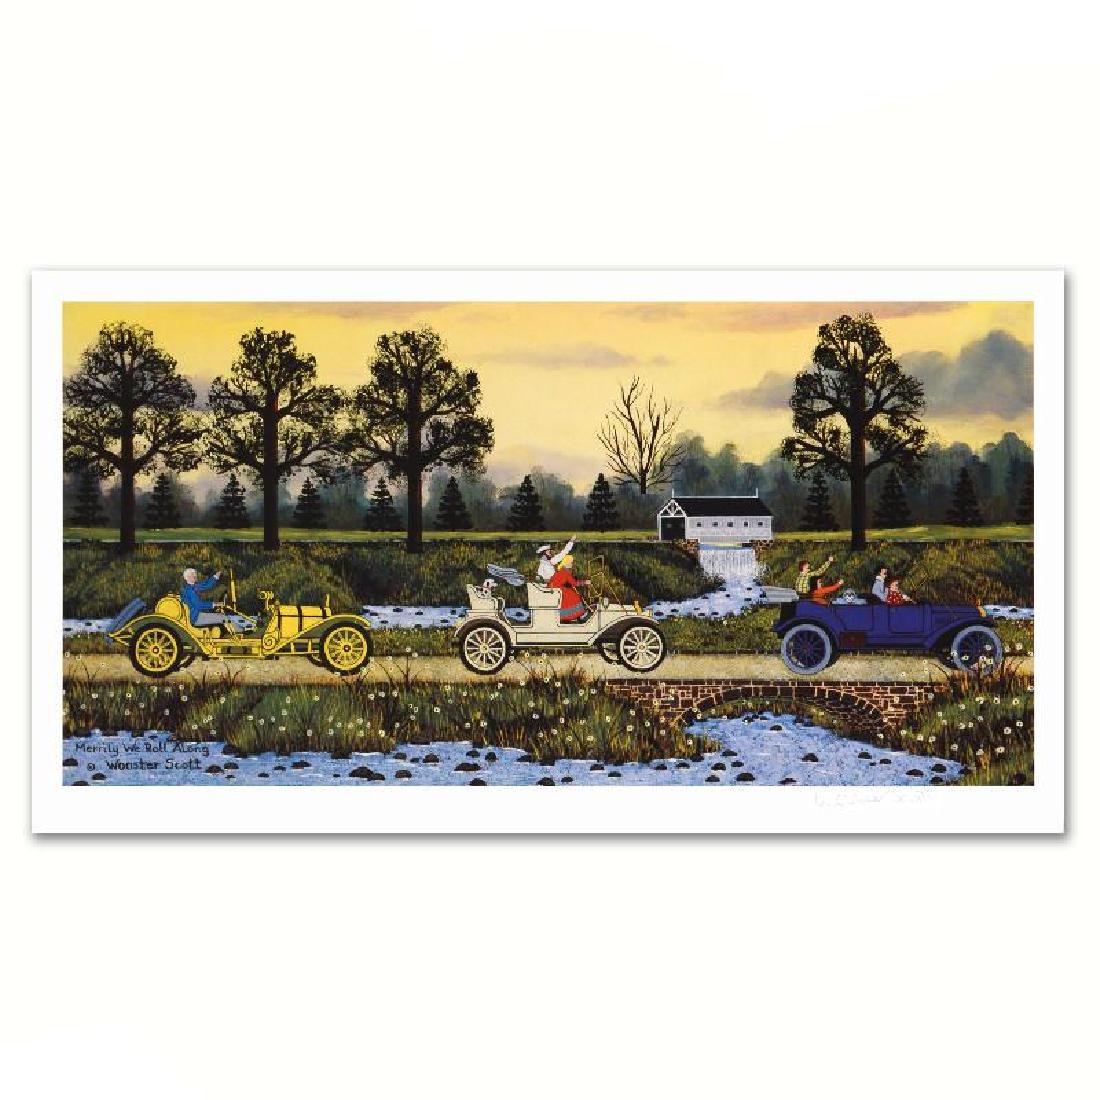 Merrily We Roll Along Limited Edition Lithograph by